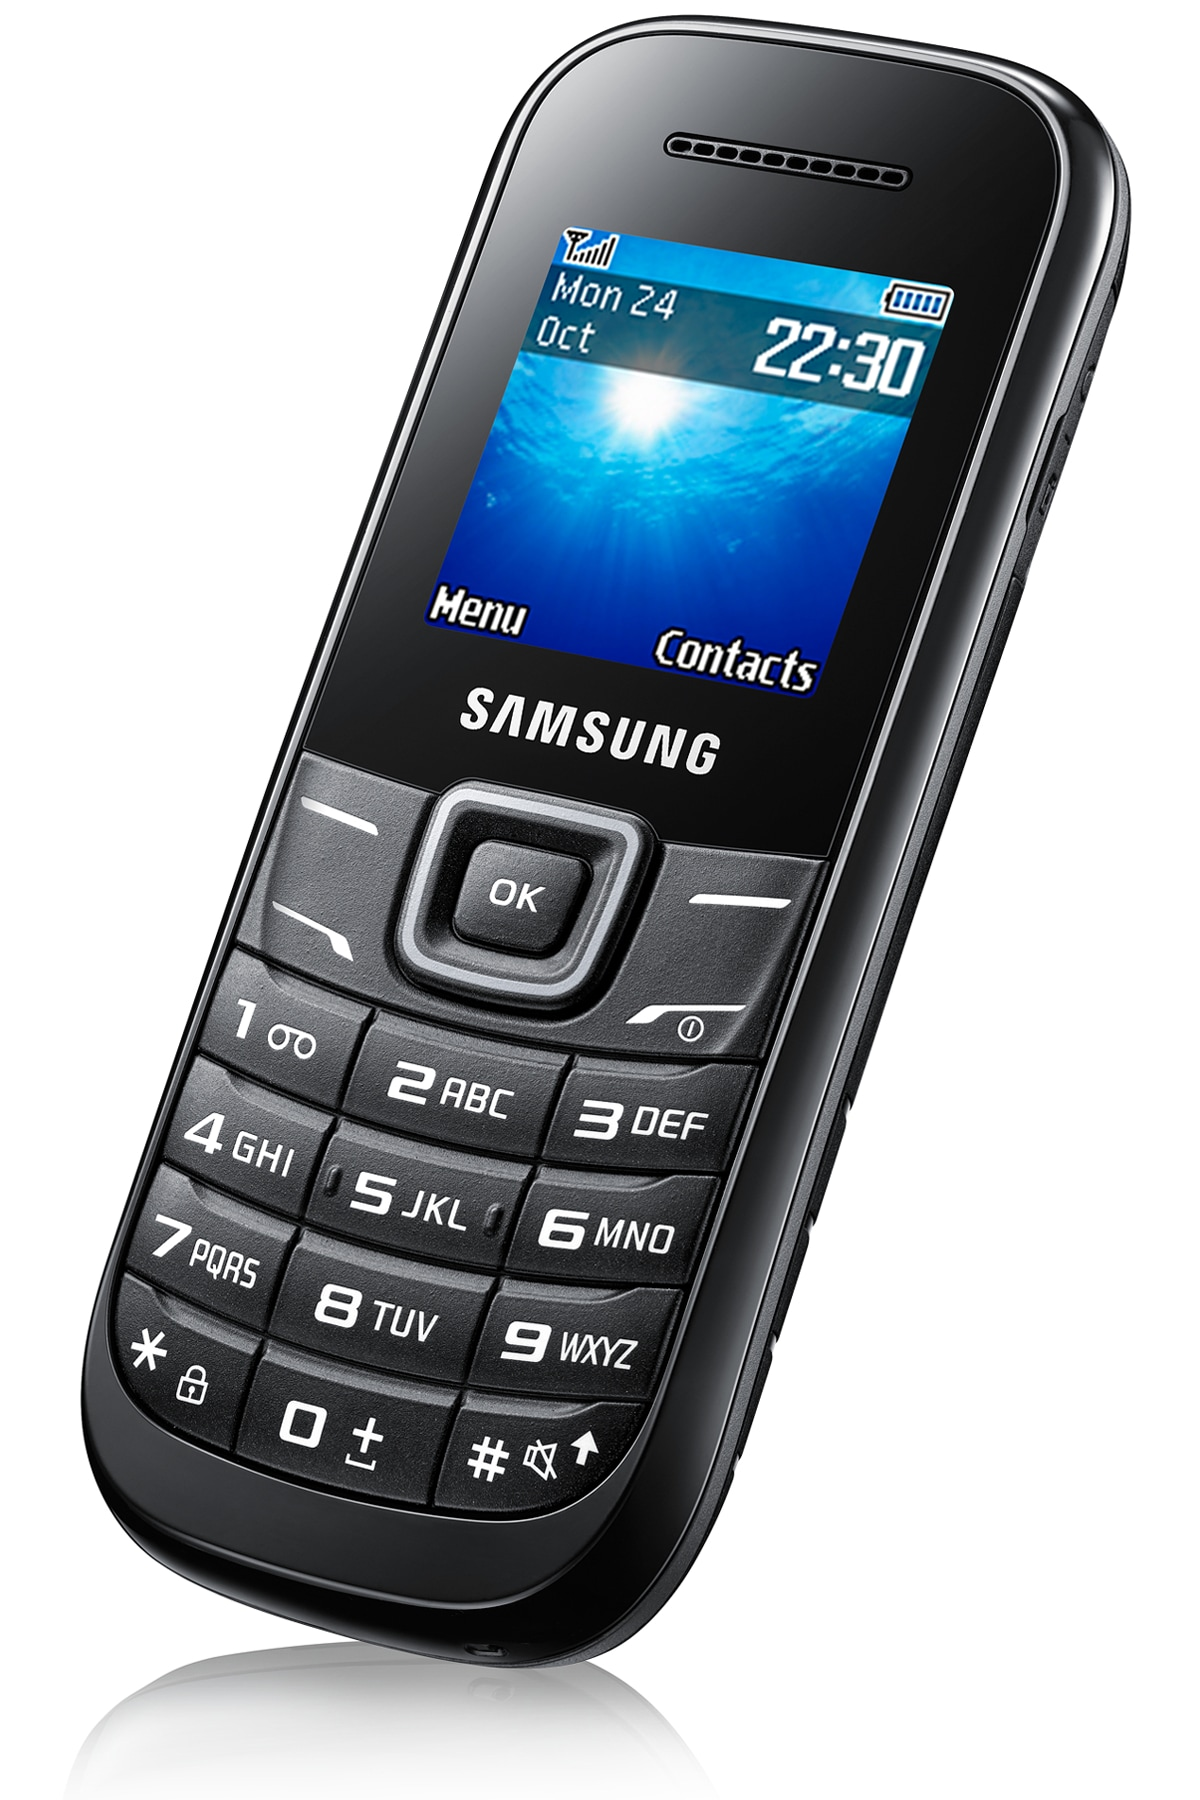 samsung e1200 mobile phone tft screen features reviews. Black Bedroom Furniture Sets. Home Design Ideas